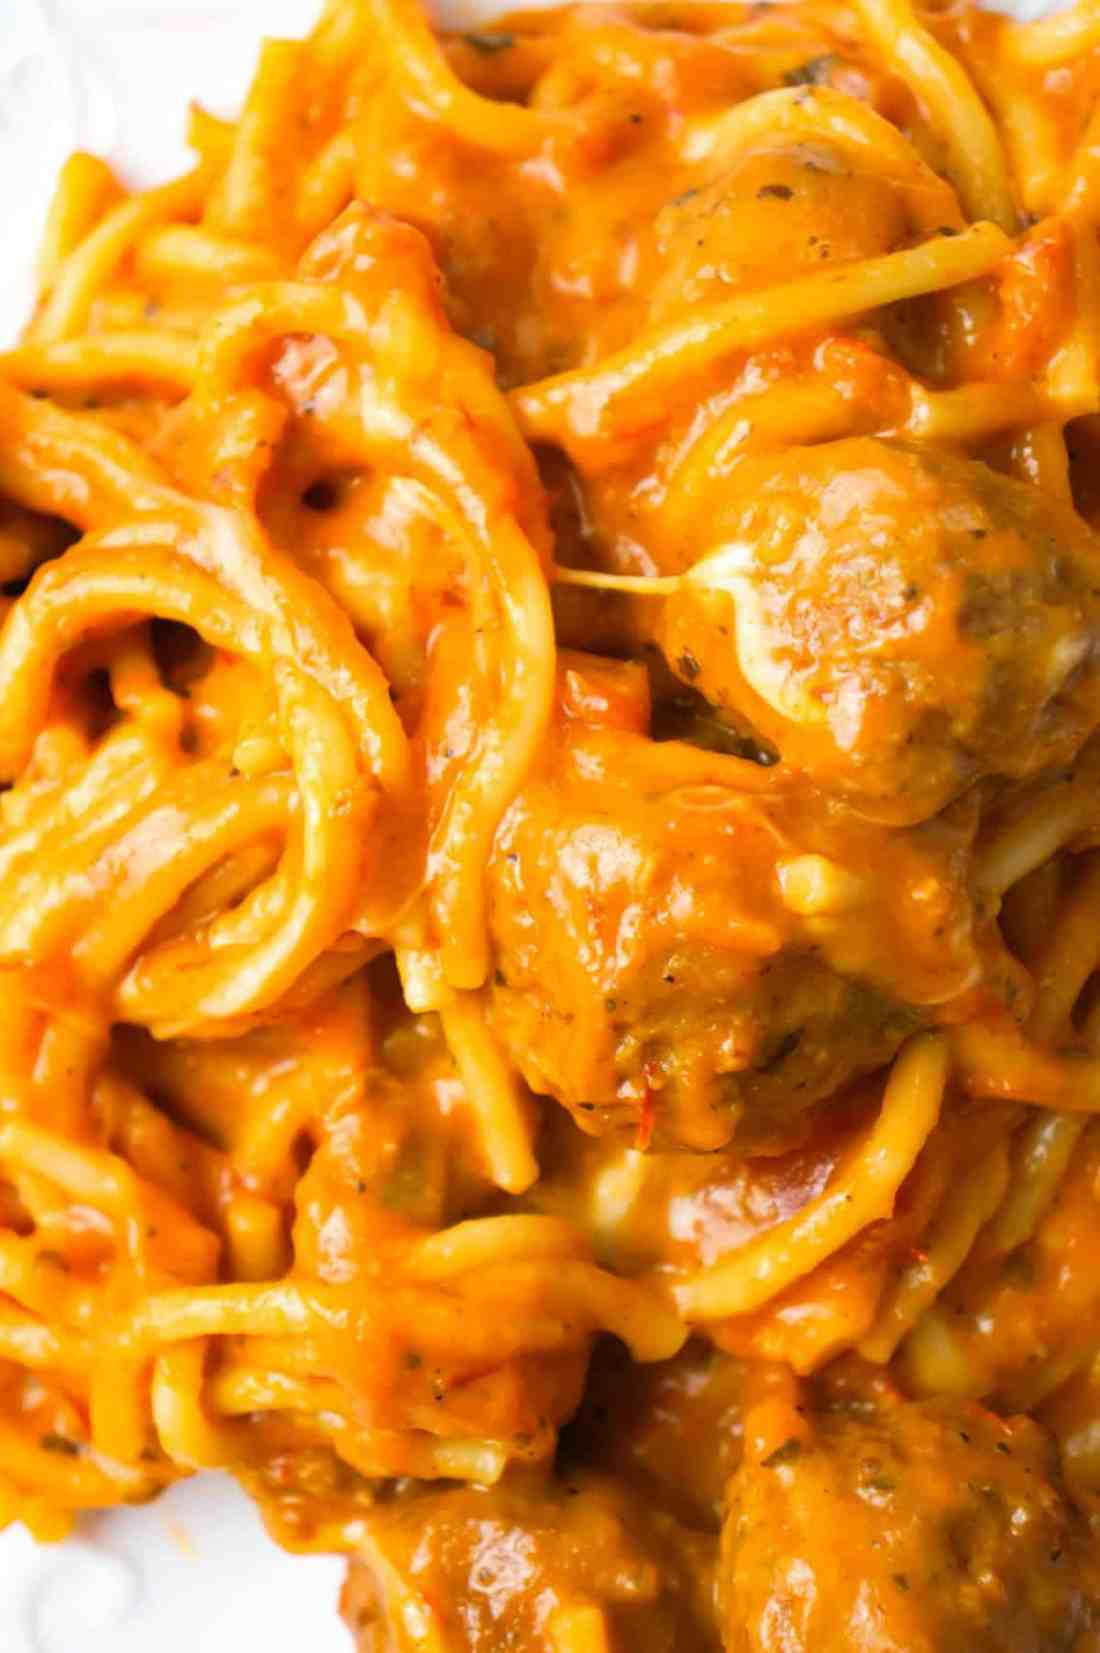 Instant Pot Cheesy Spaghetti and Meatballs is an easy and delicious pressure cooker pasta recipe loaded with Italian meatballs, shredded mozzarella and cheddar cheese and marinara sauce.